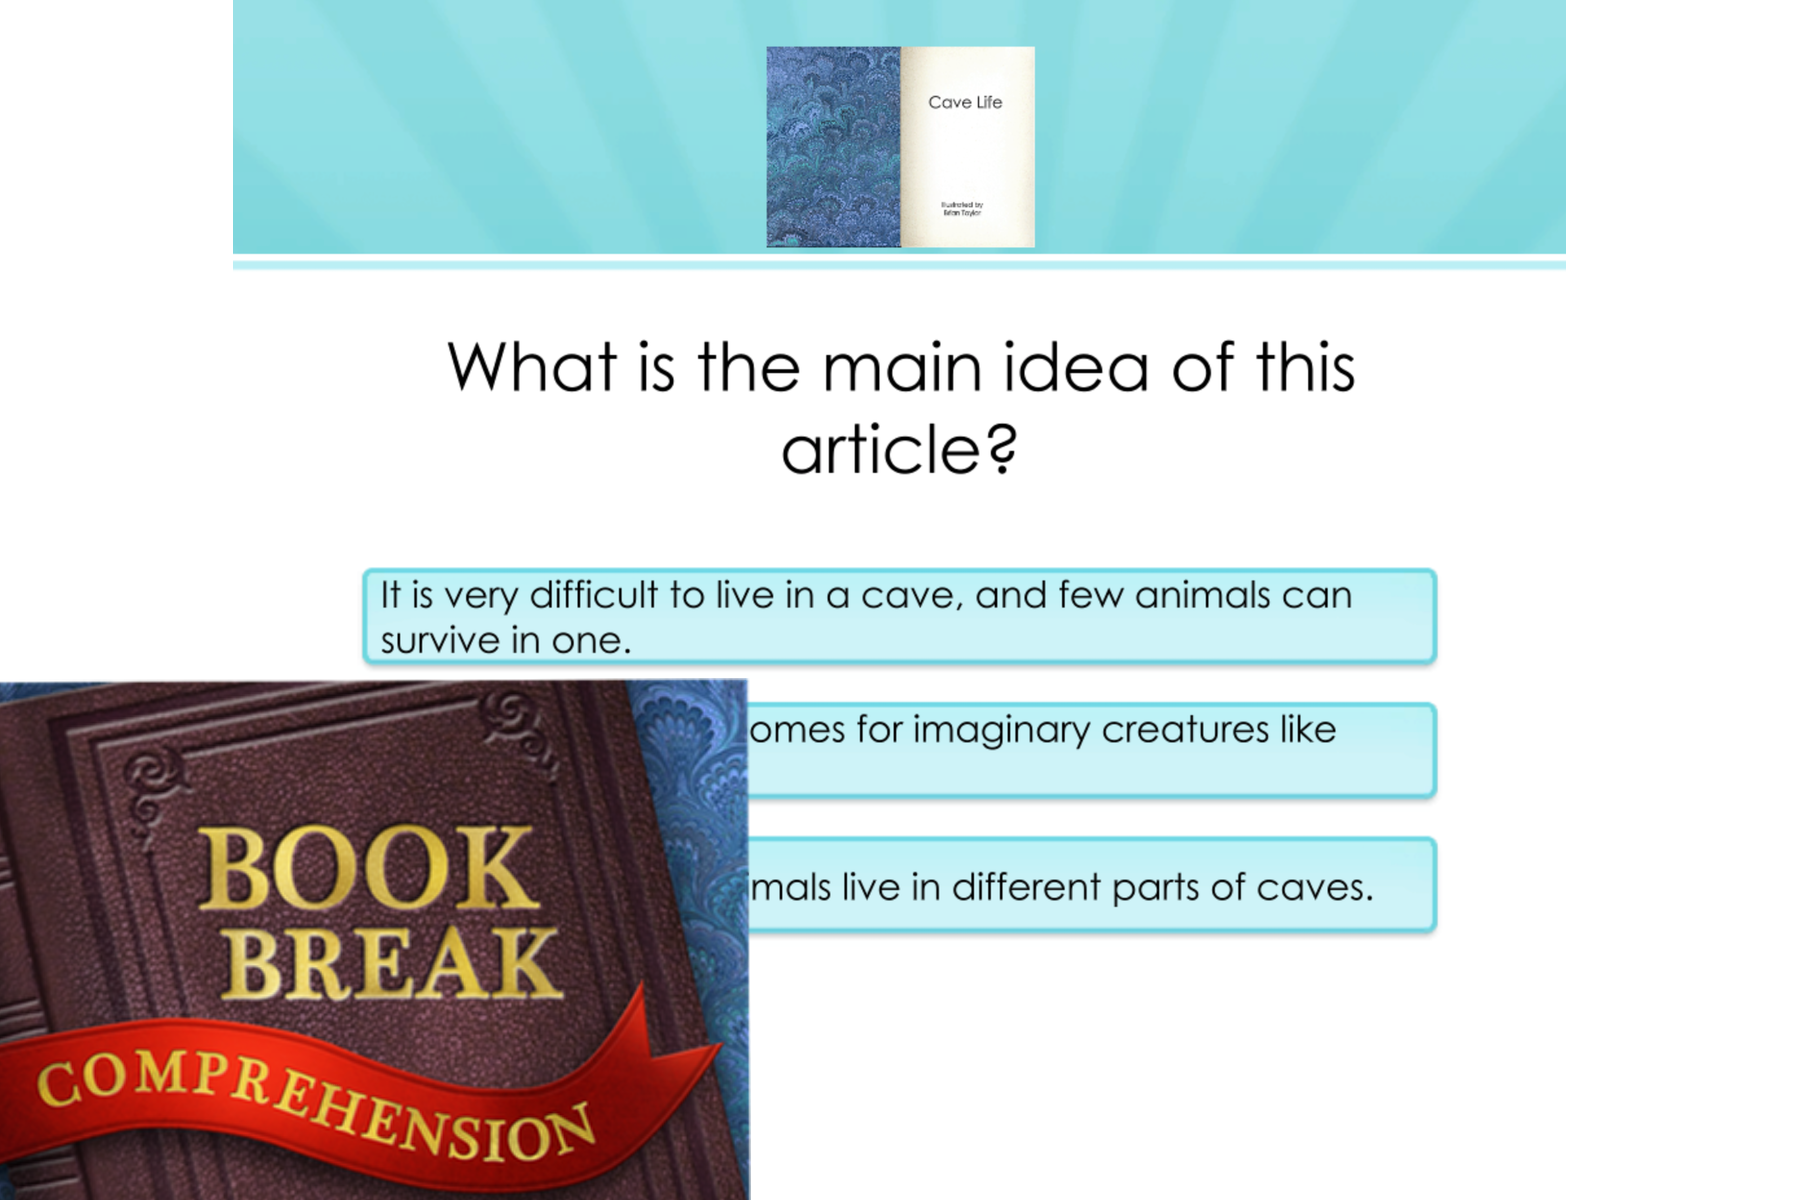 The new Book Break Comprehension activity gives students an opportunity to check for their own comprehension.